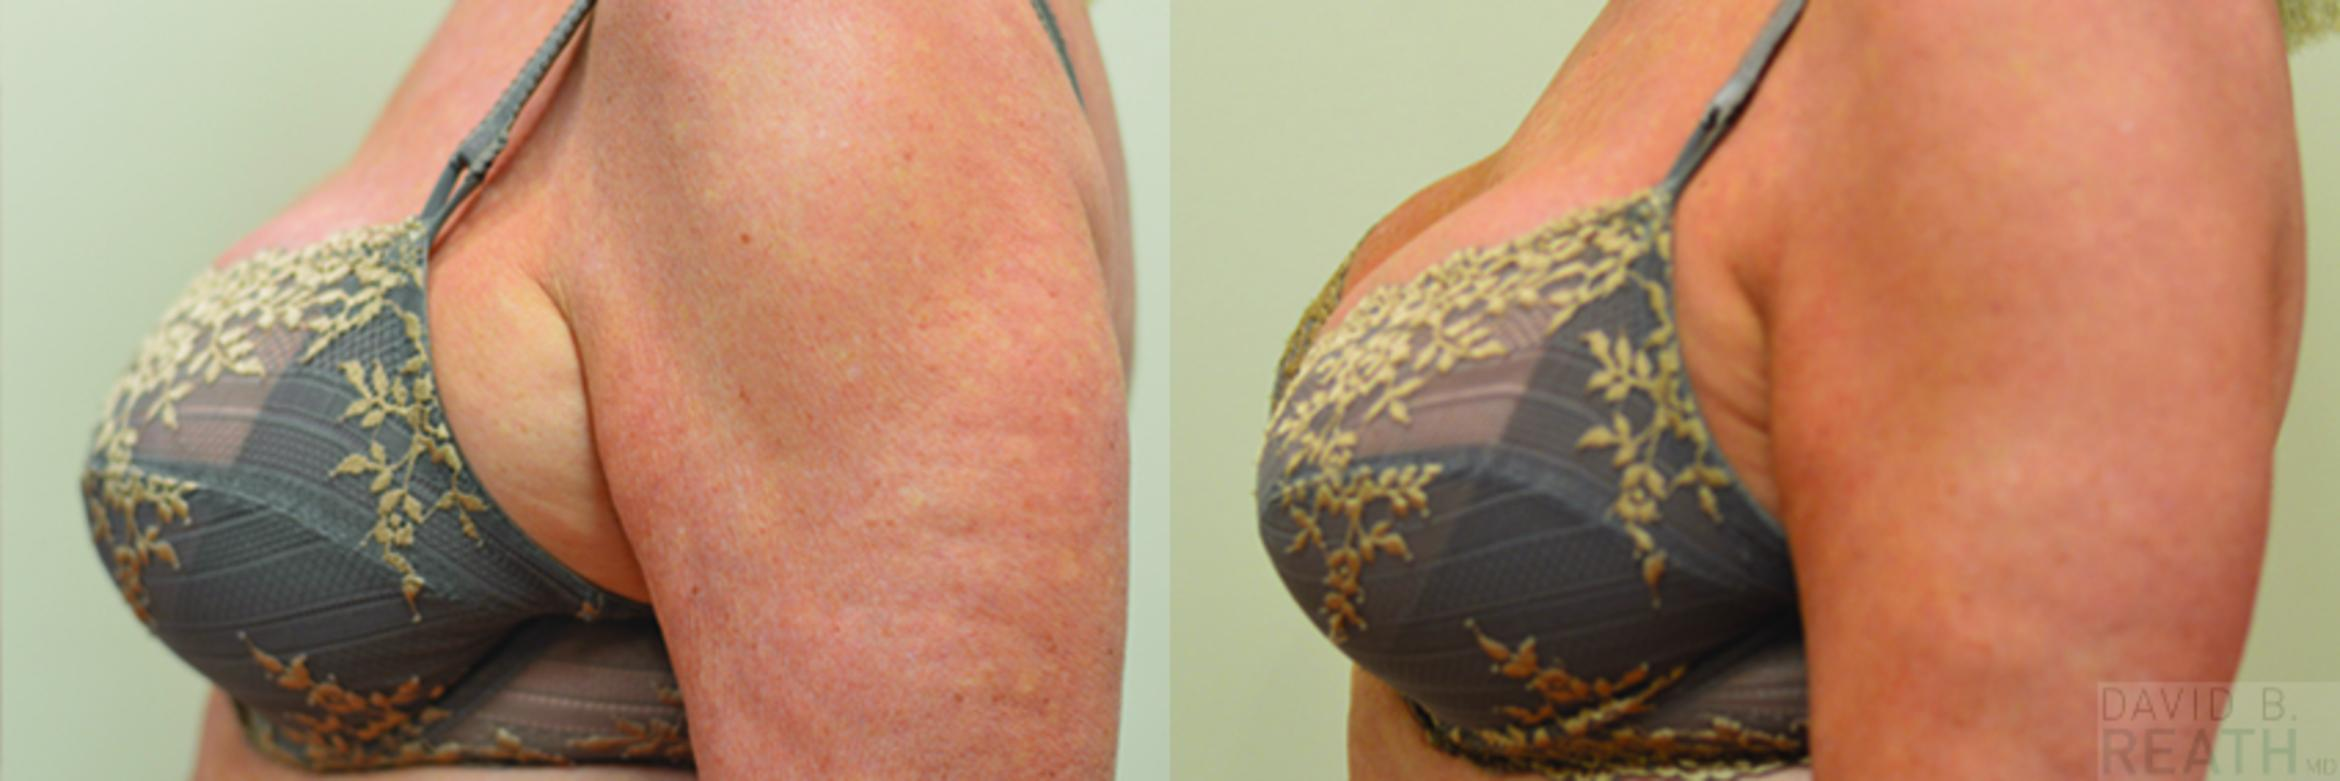 CoolSculpting CoolMini Treatment to Underarm Puffs Before & After Photo | Knoxville, Tennessee | David B. Reath, MD